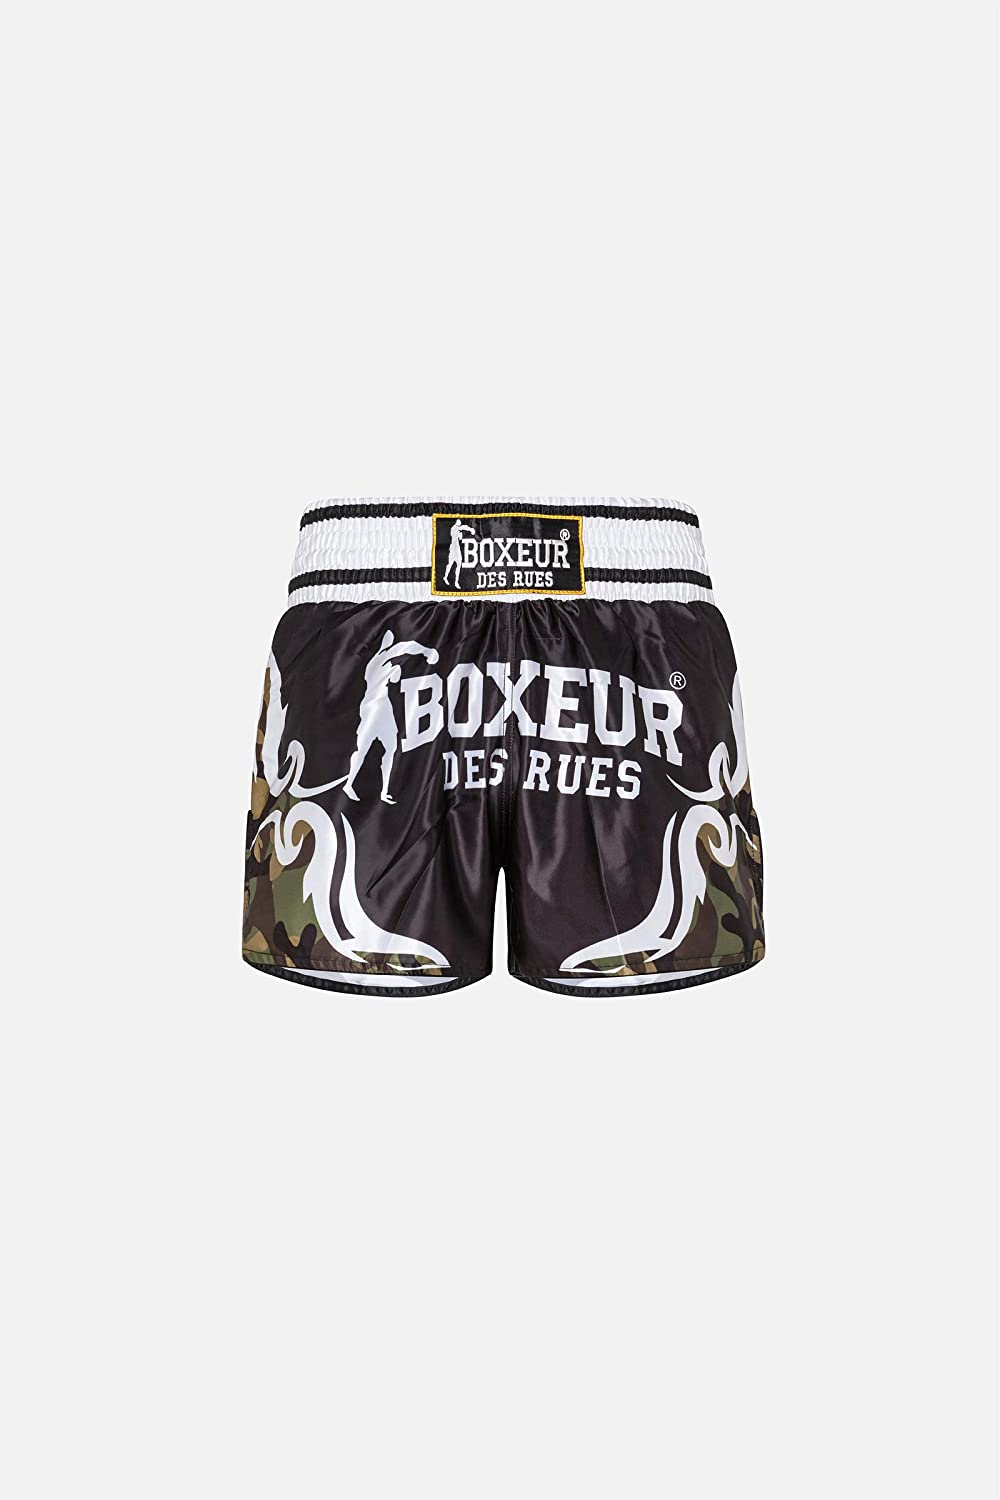 BOXEUR DES RUES Fight Activewear Shorts Kick-Thai con Simboli Tribali Uomo